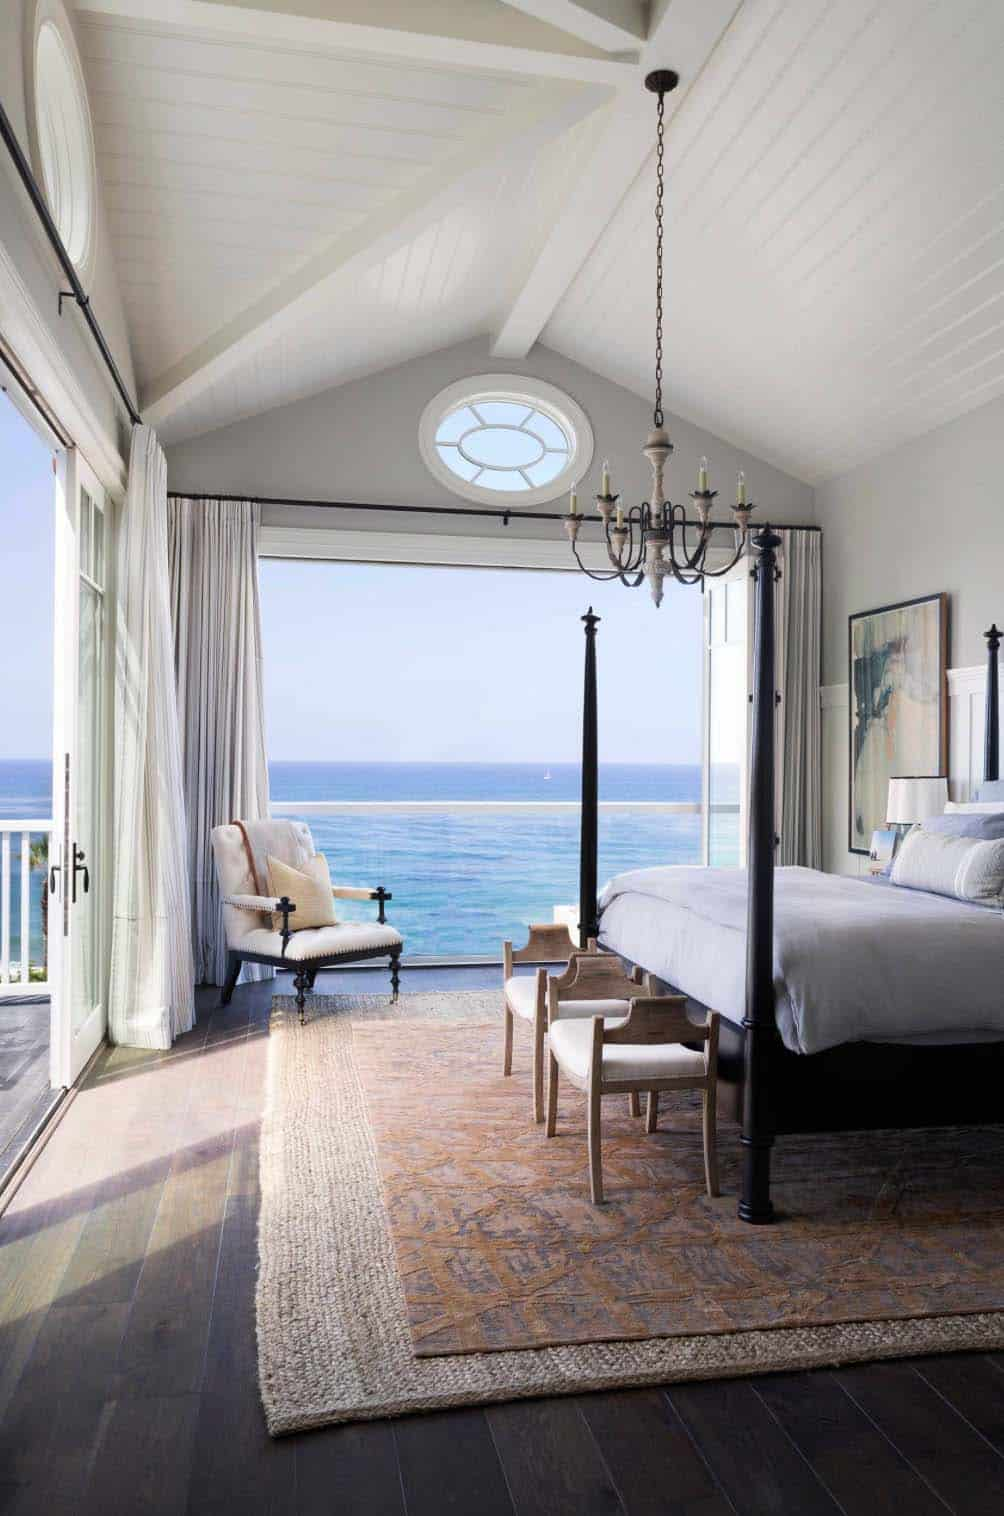 captivating beach chic master bedroom | East coast meets west coast in this California beach house